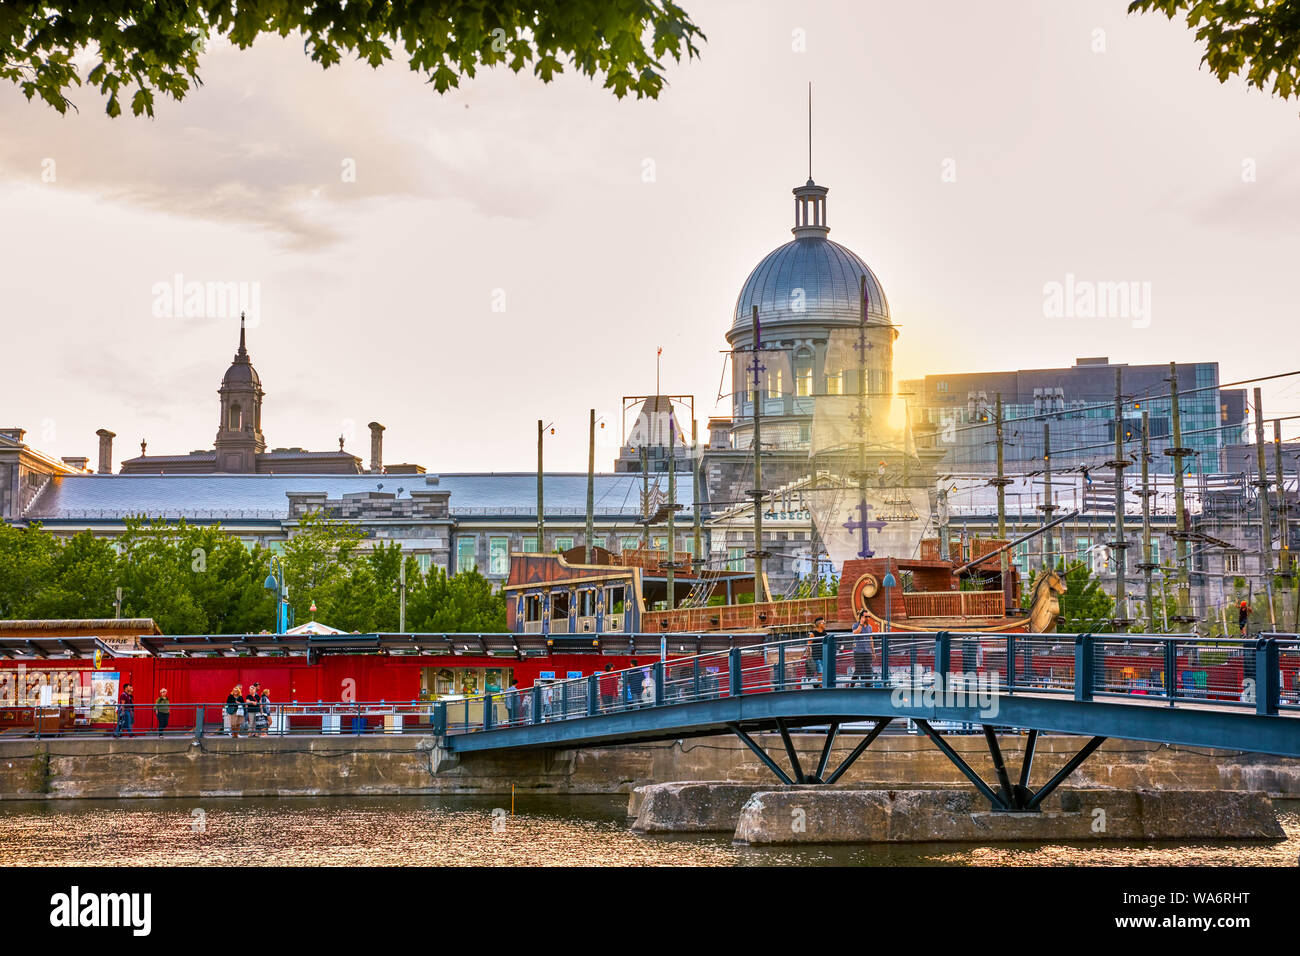 Bonsecours market or marche bonsecours building, city hall and the panoramic view of old town Montreal, Quebec, Canada. Stock Photo